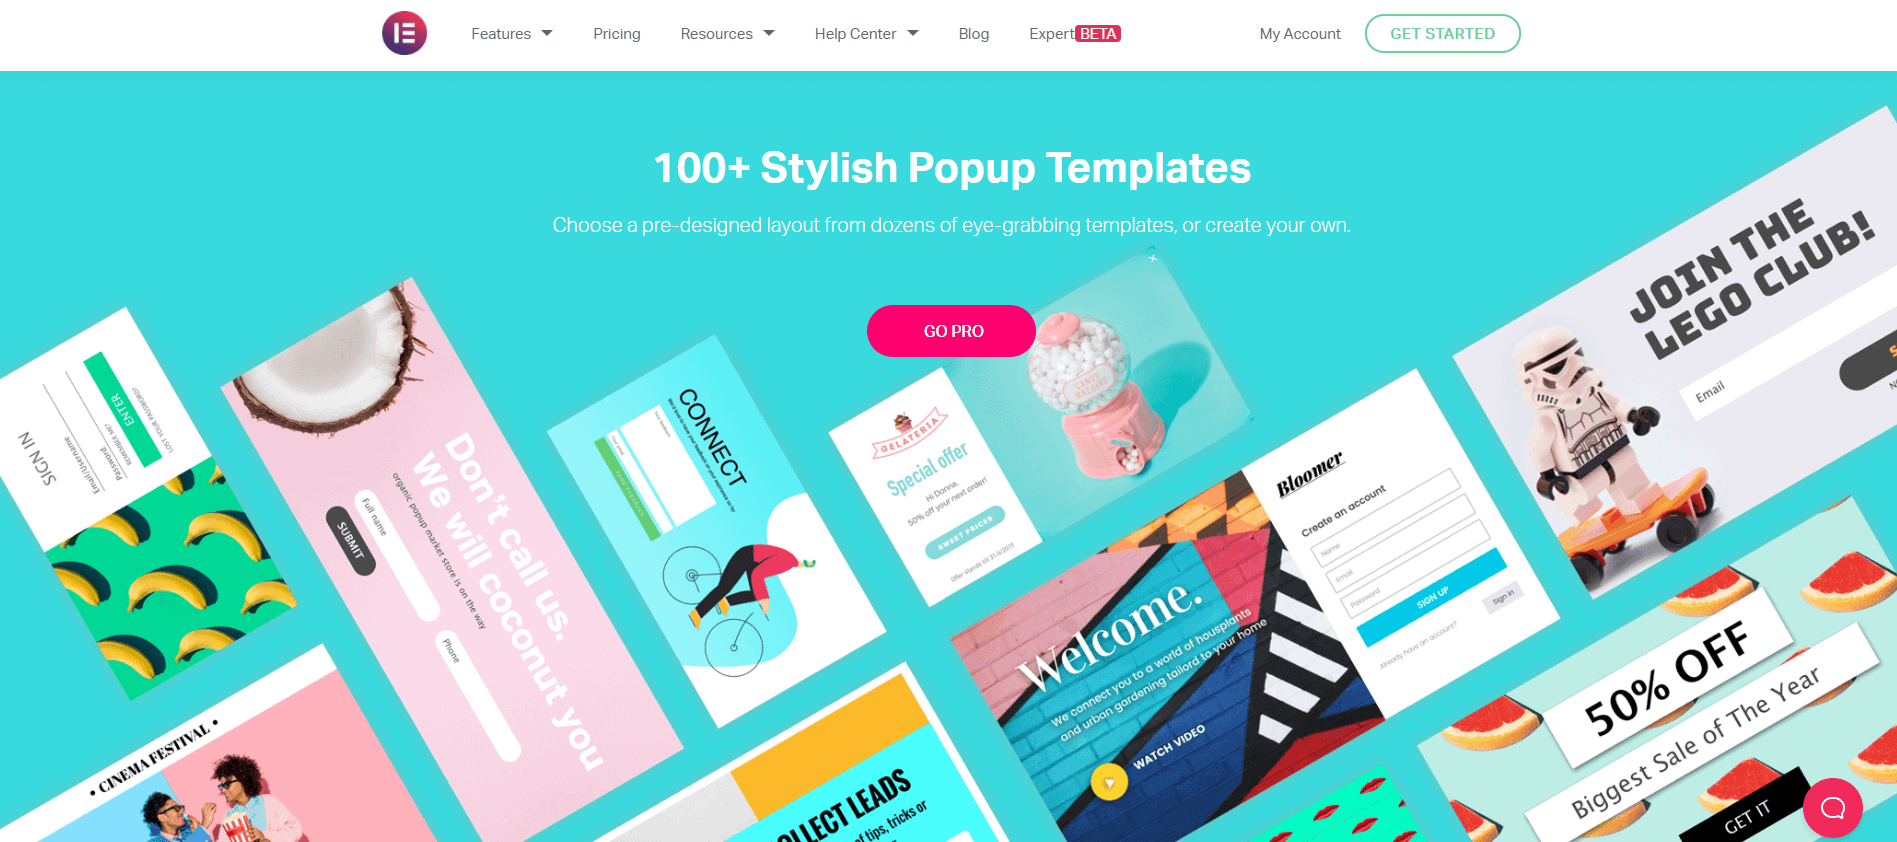 Popup templates to grow email list